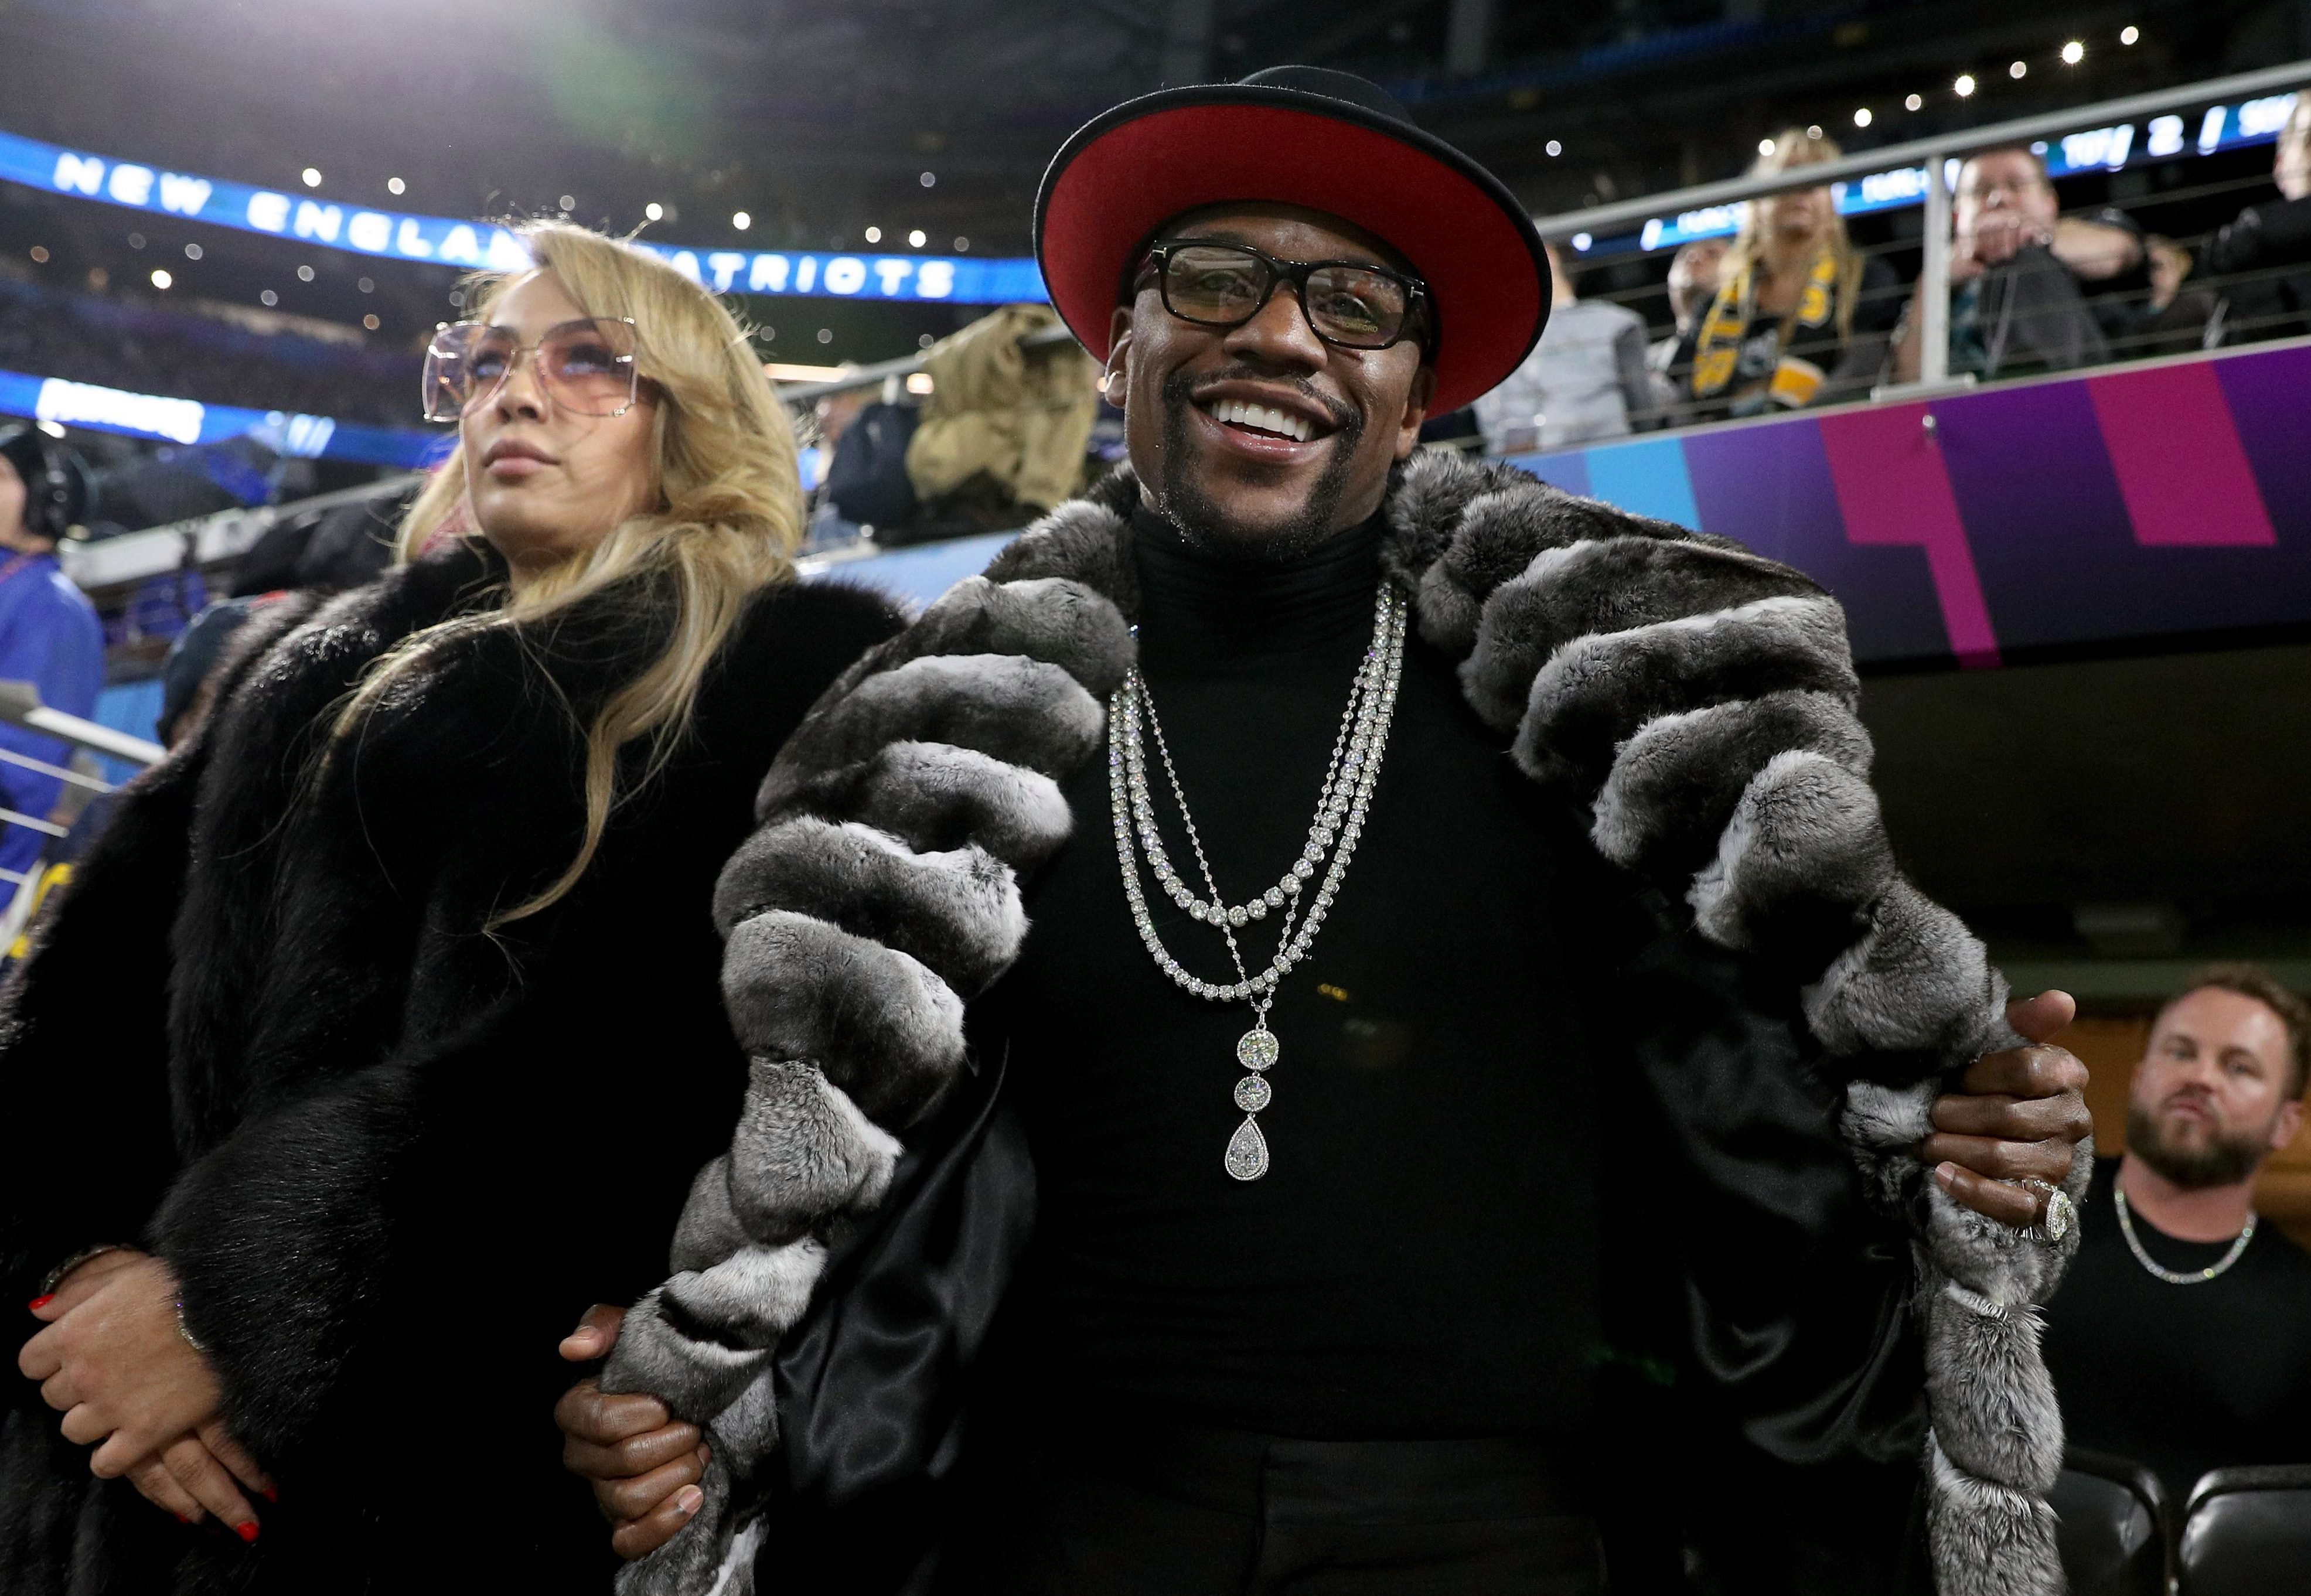 Floyd Mayweather flaunted his wealth at the Super Bowl with flash fur coat